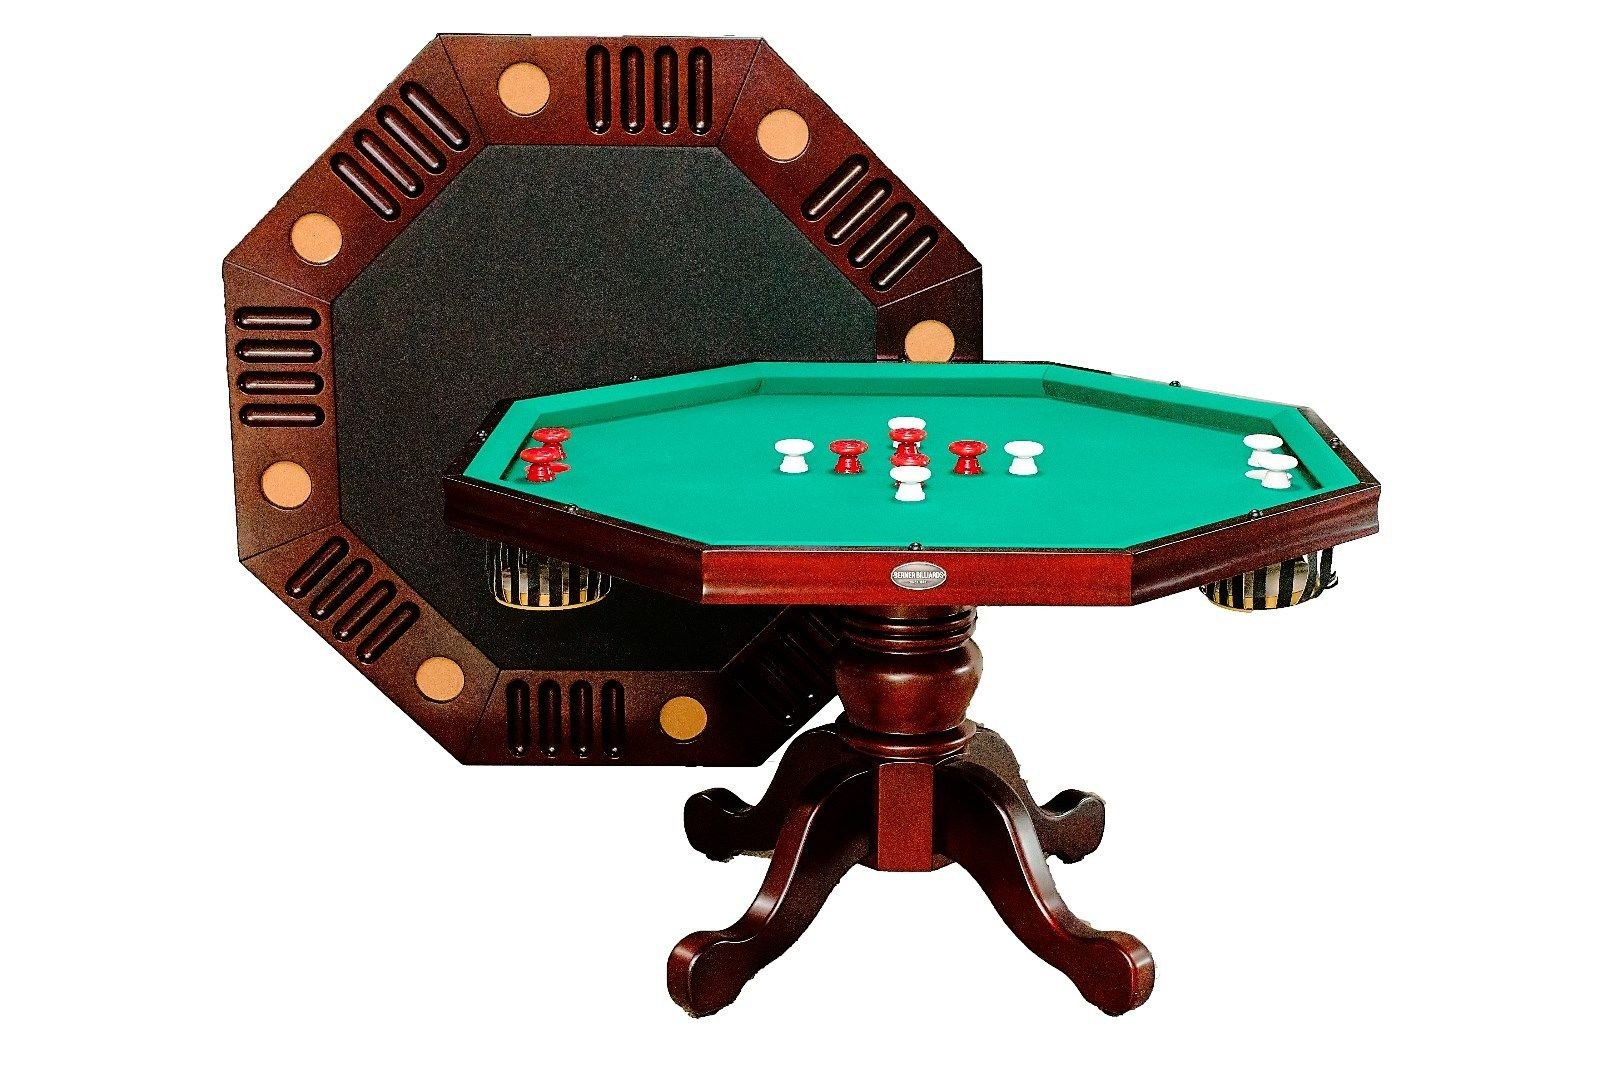 3 in 1 Game Table - Octagon 54'' Bumper Pool, Poker & Dining in Mahogany By Berner Billiards